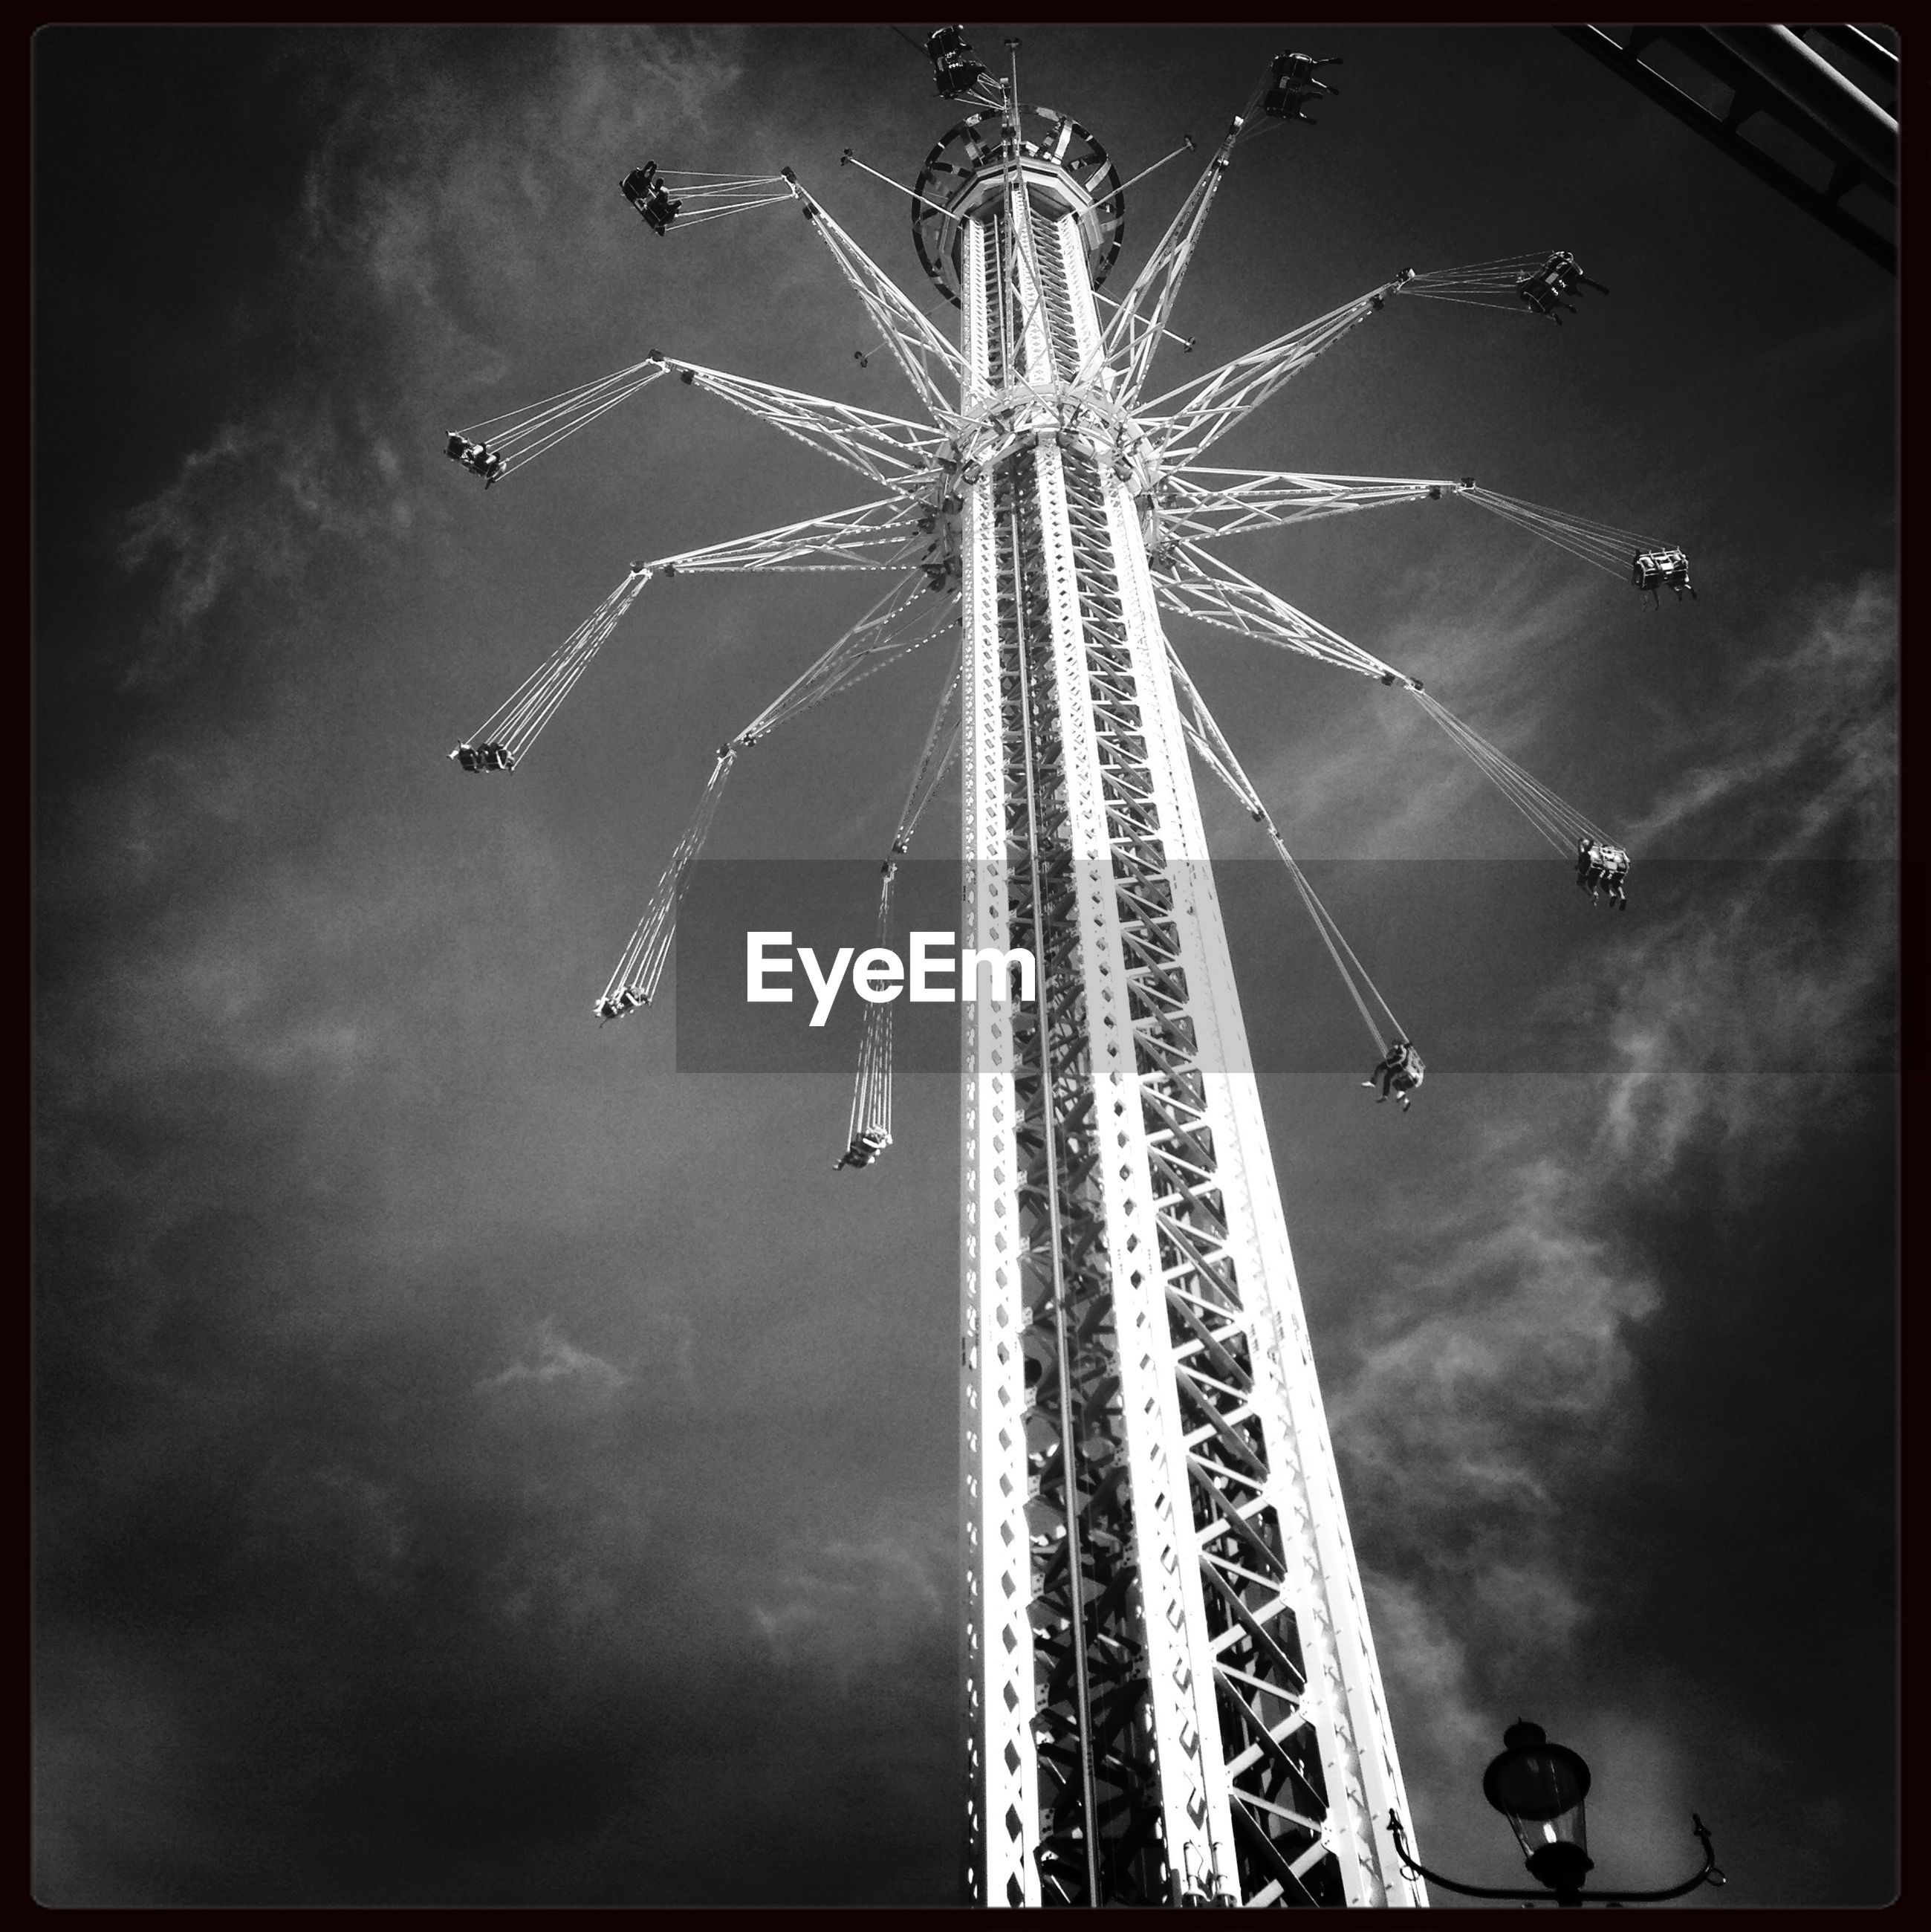 arts culture and entertainment, low angle view, sky, amusement park, amusement park ride, illuminated, transfer print, night, enjoyment, motion, fun, chain swing ride, celebration, auto post production filter, ferris wheel, leisure activity, event, cloud - sky, outdoors, firework display